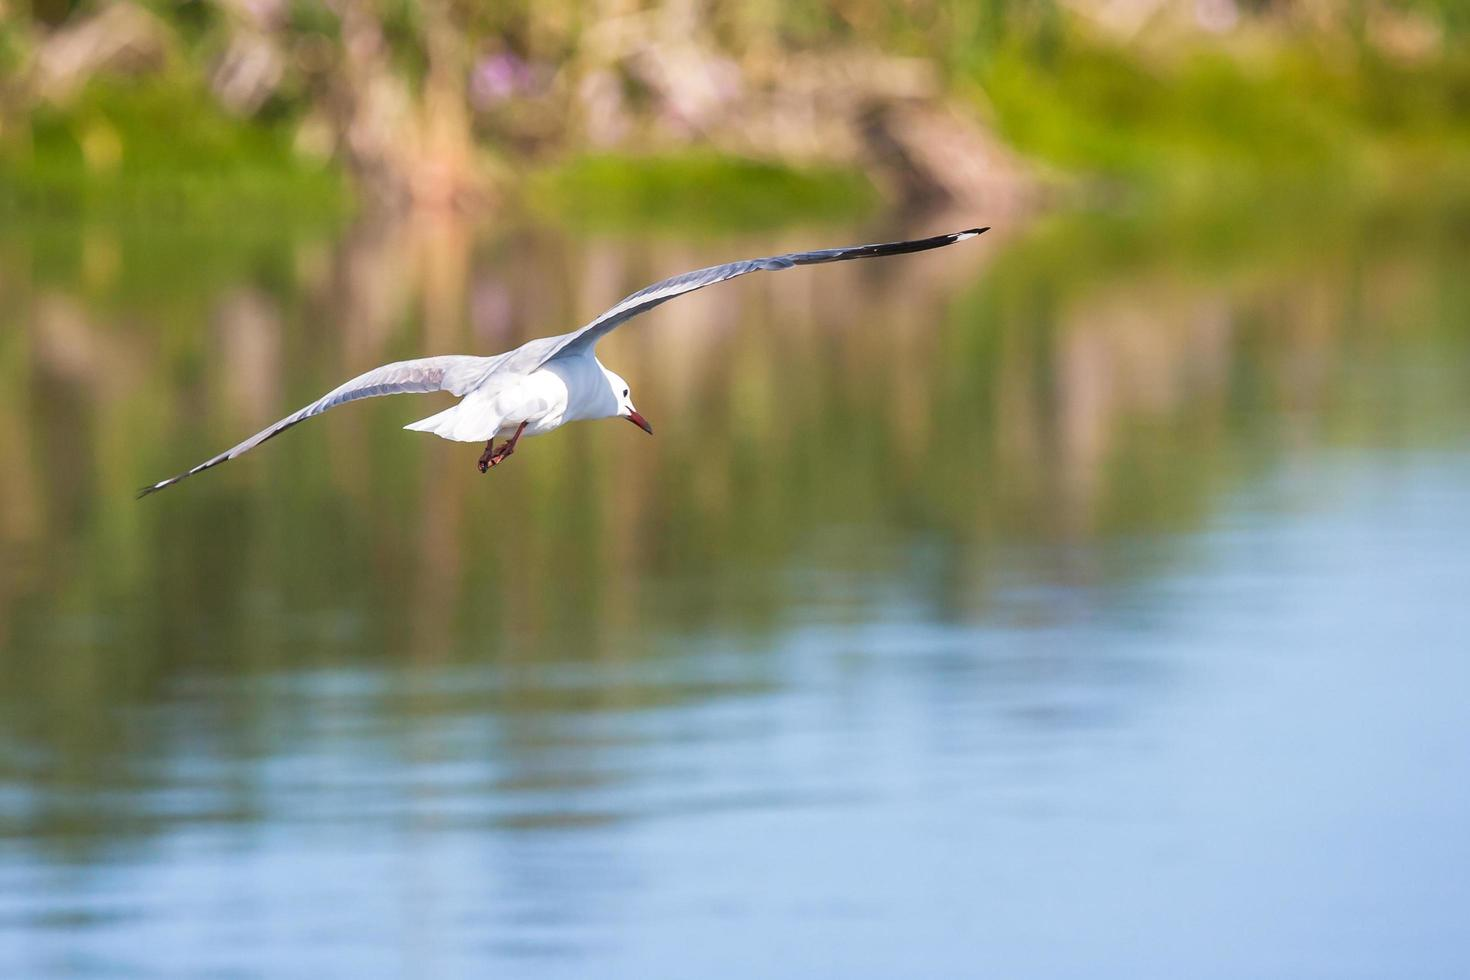 White feathered bird flying above water photo